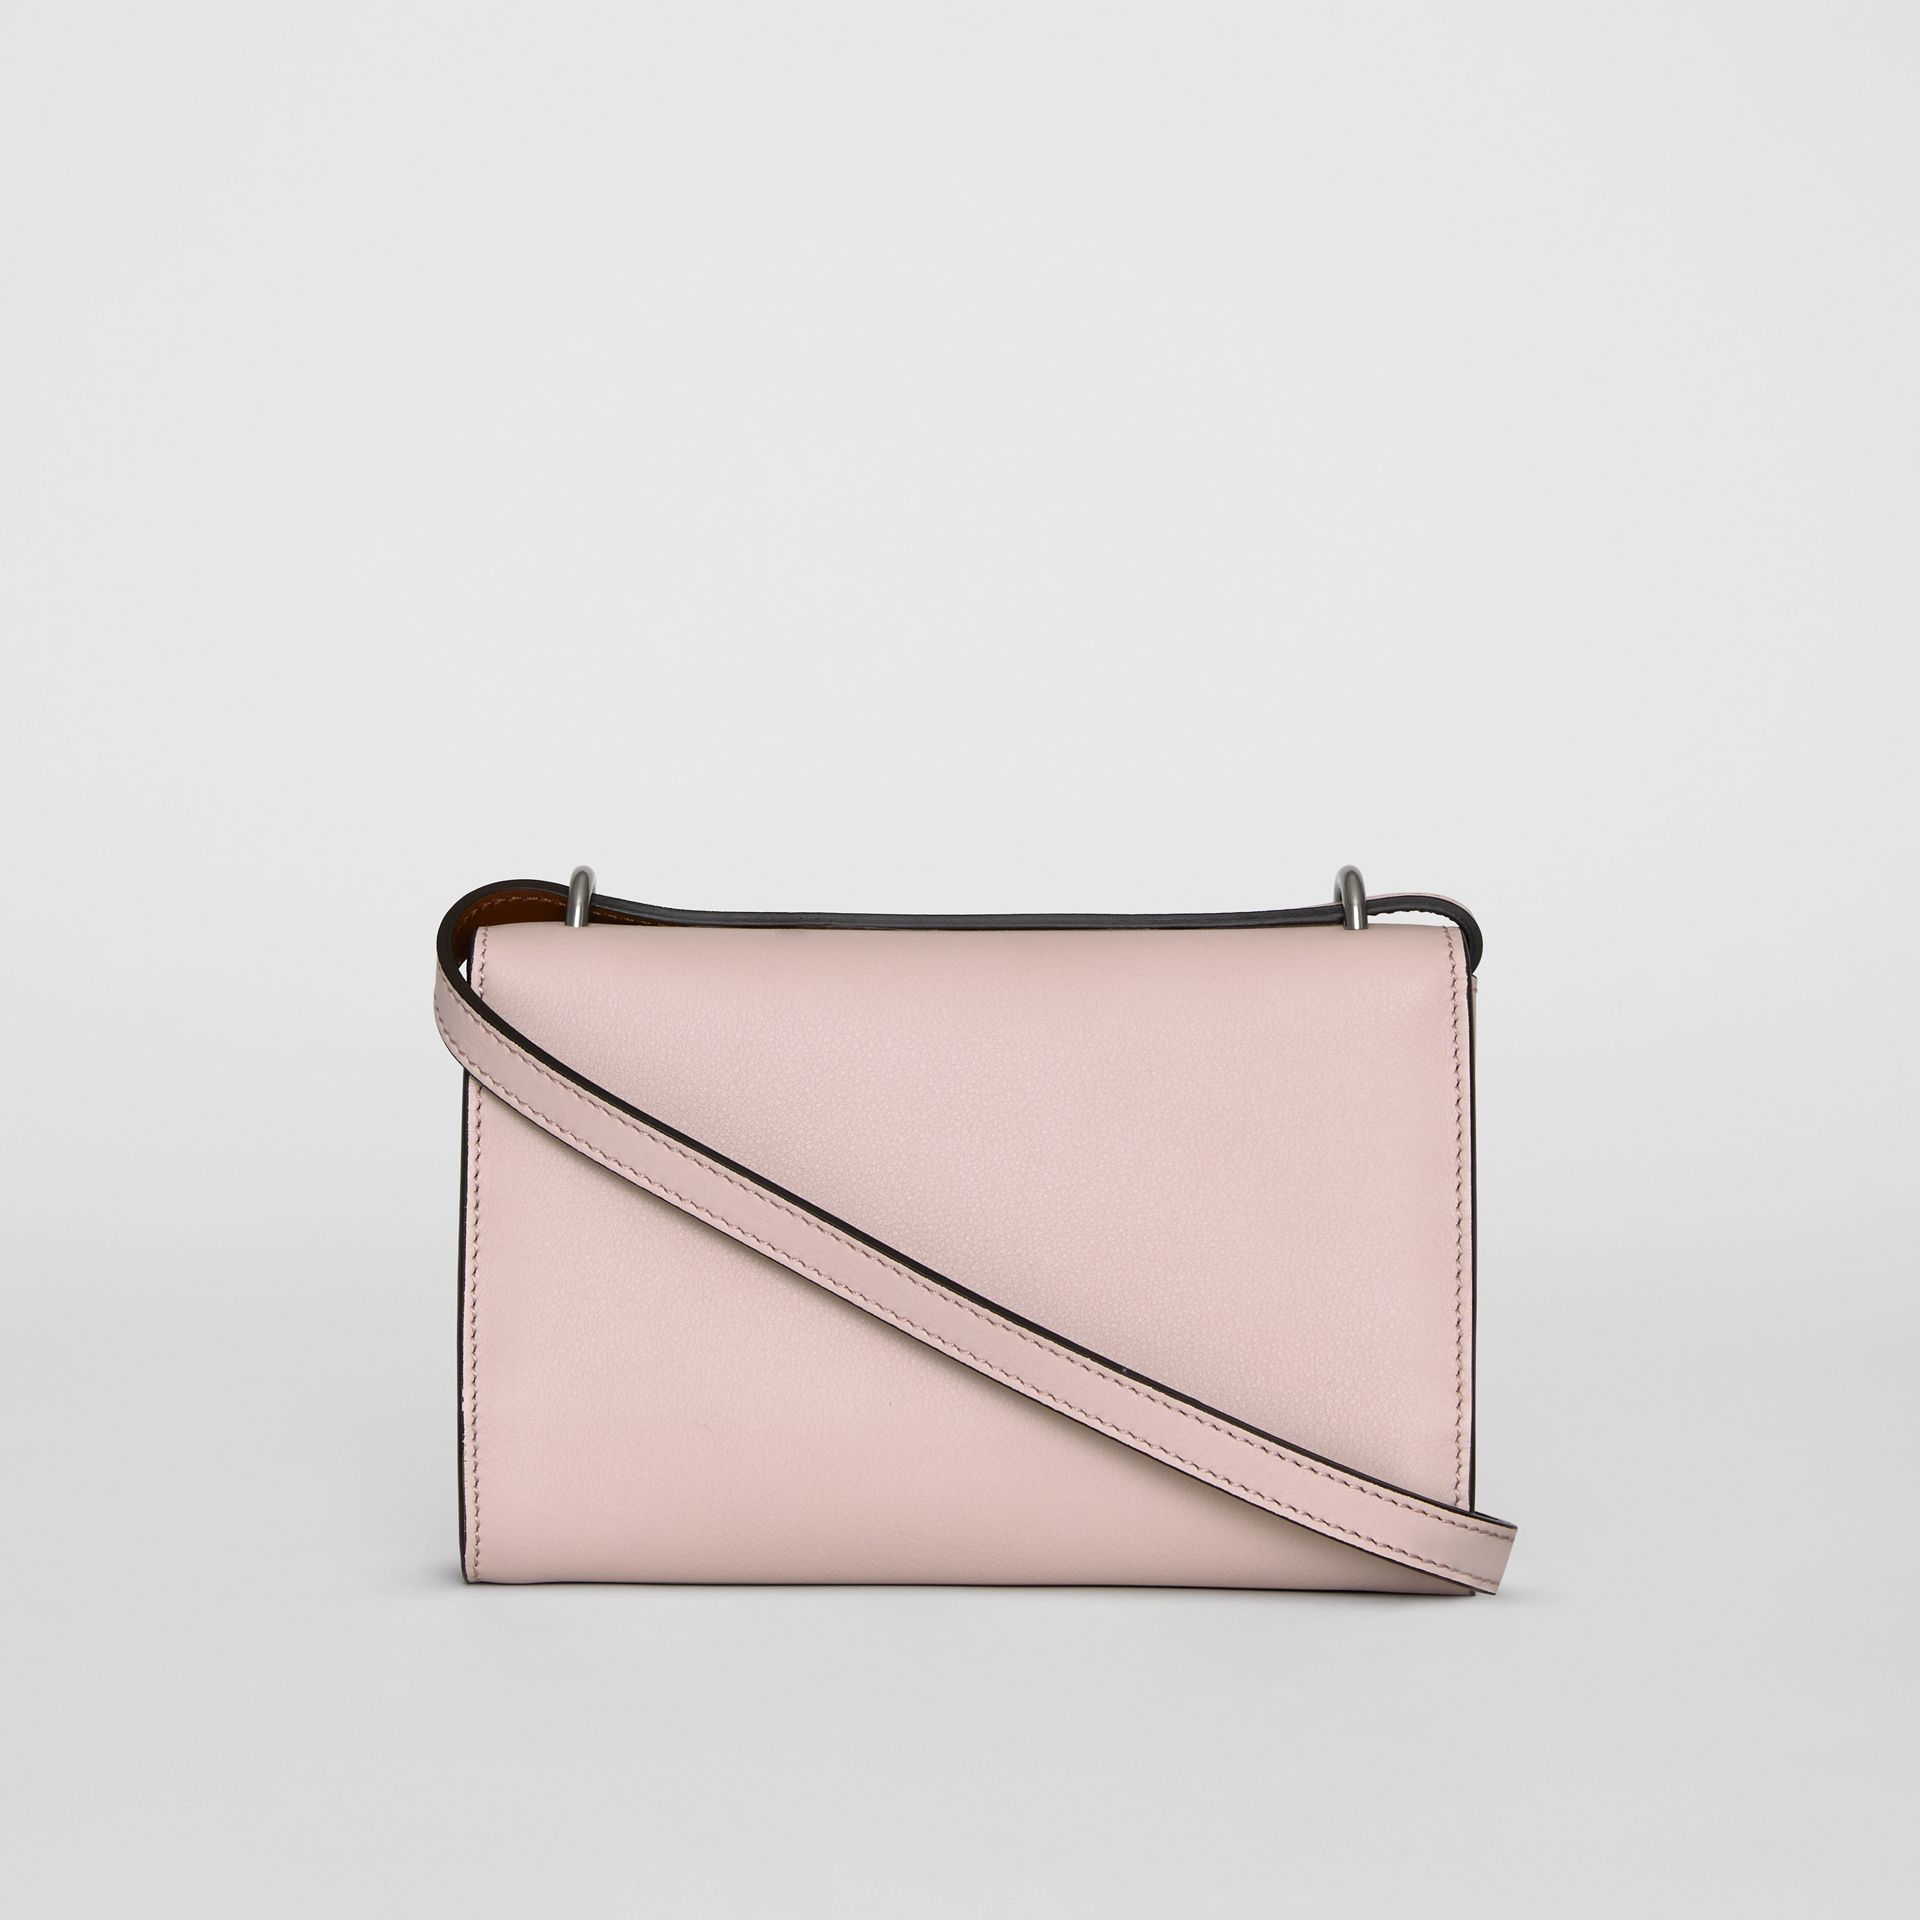 Embossed Crest Leather Wallet with Detachable Strap in Chalk Pink - Women | Burberry - gallery image 7